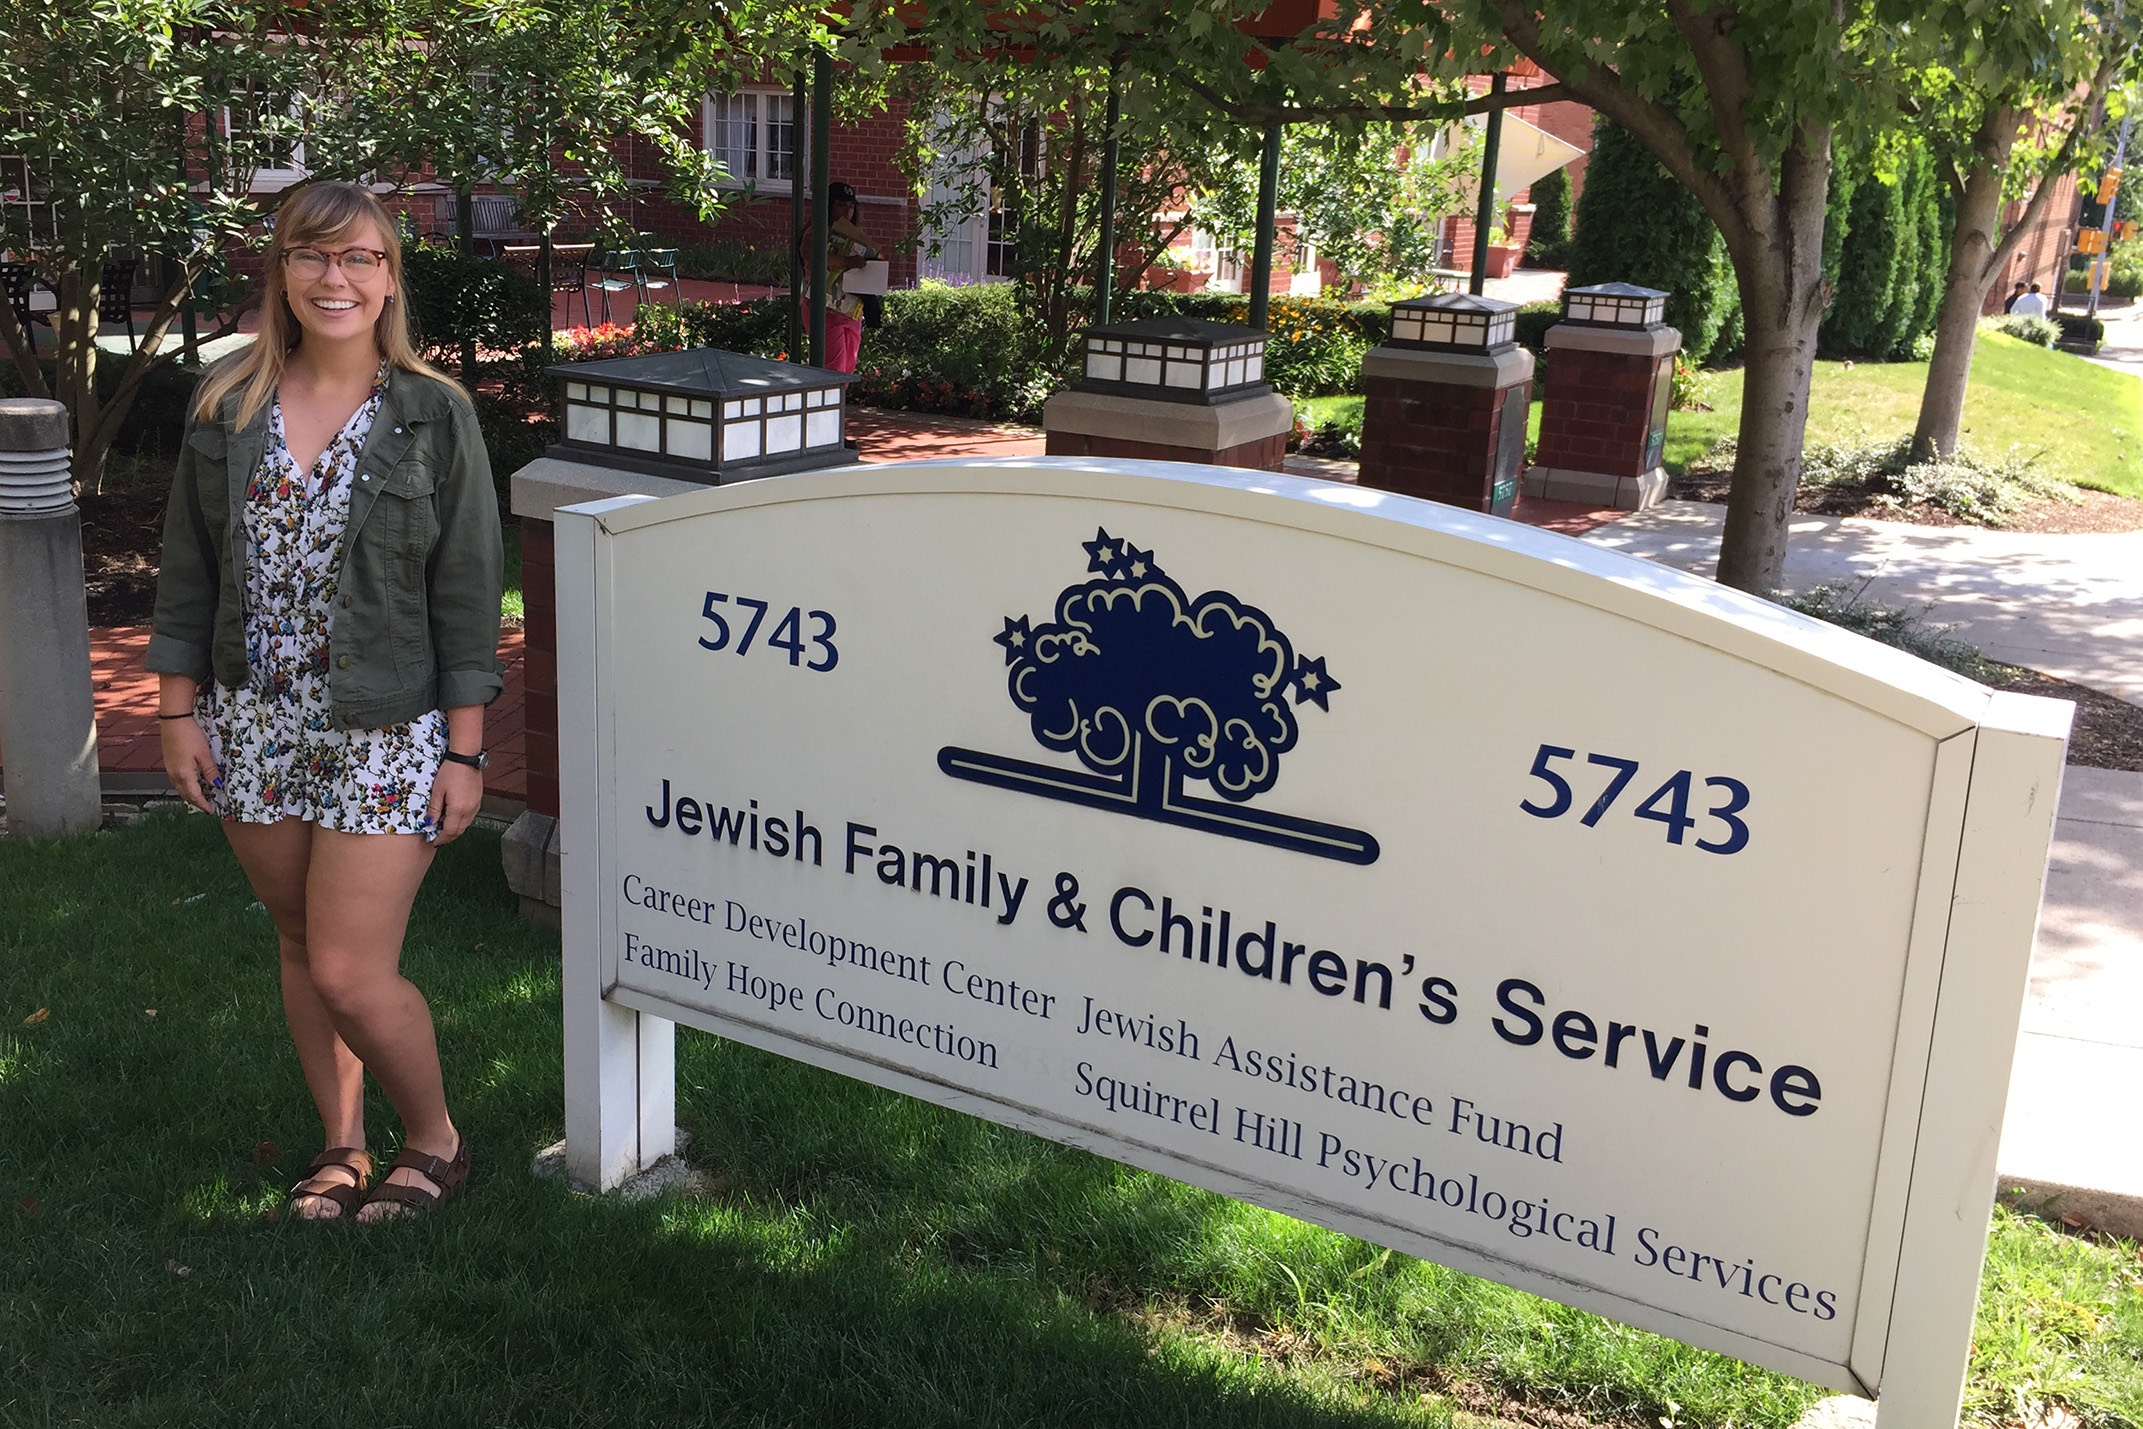 Savannah Parson interned during summer 2017 at Jewish Children & Family Services.